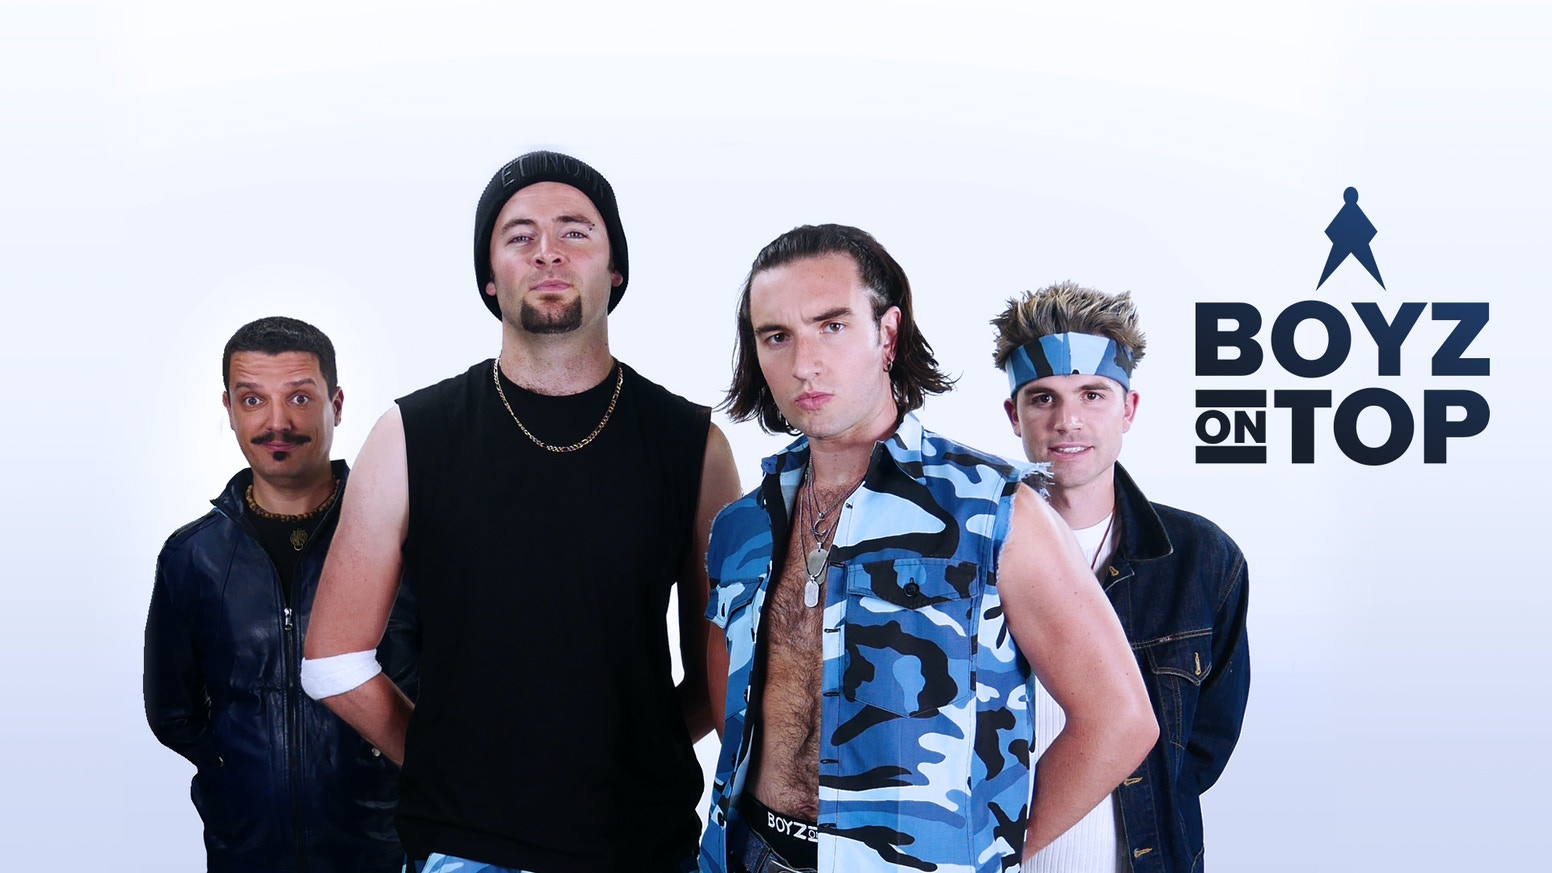 A comedy mocumentary series about a failed boyband and their attempt at a comeback ten years on.